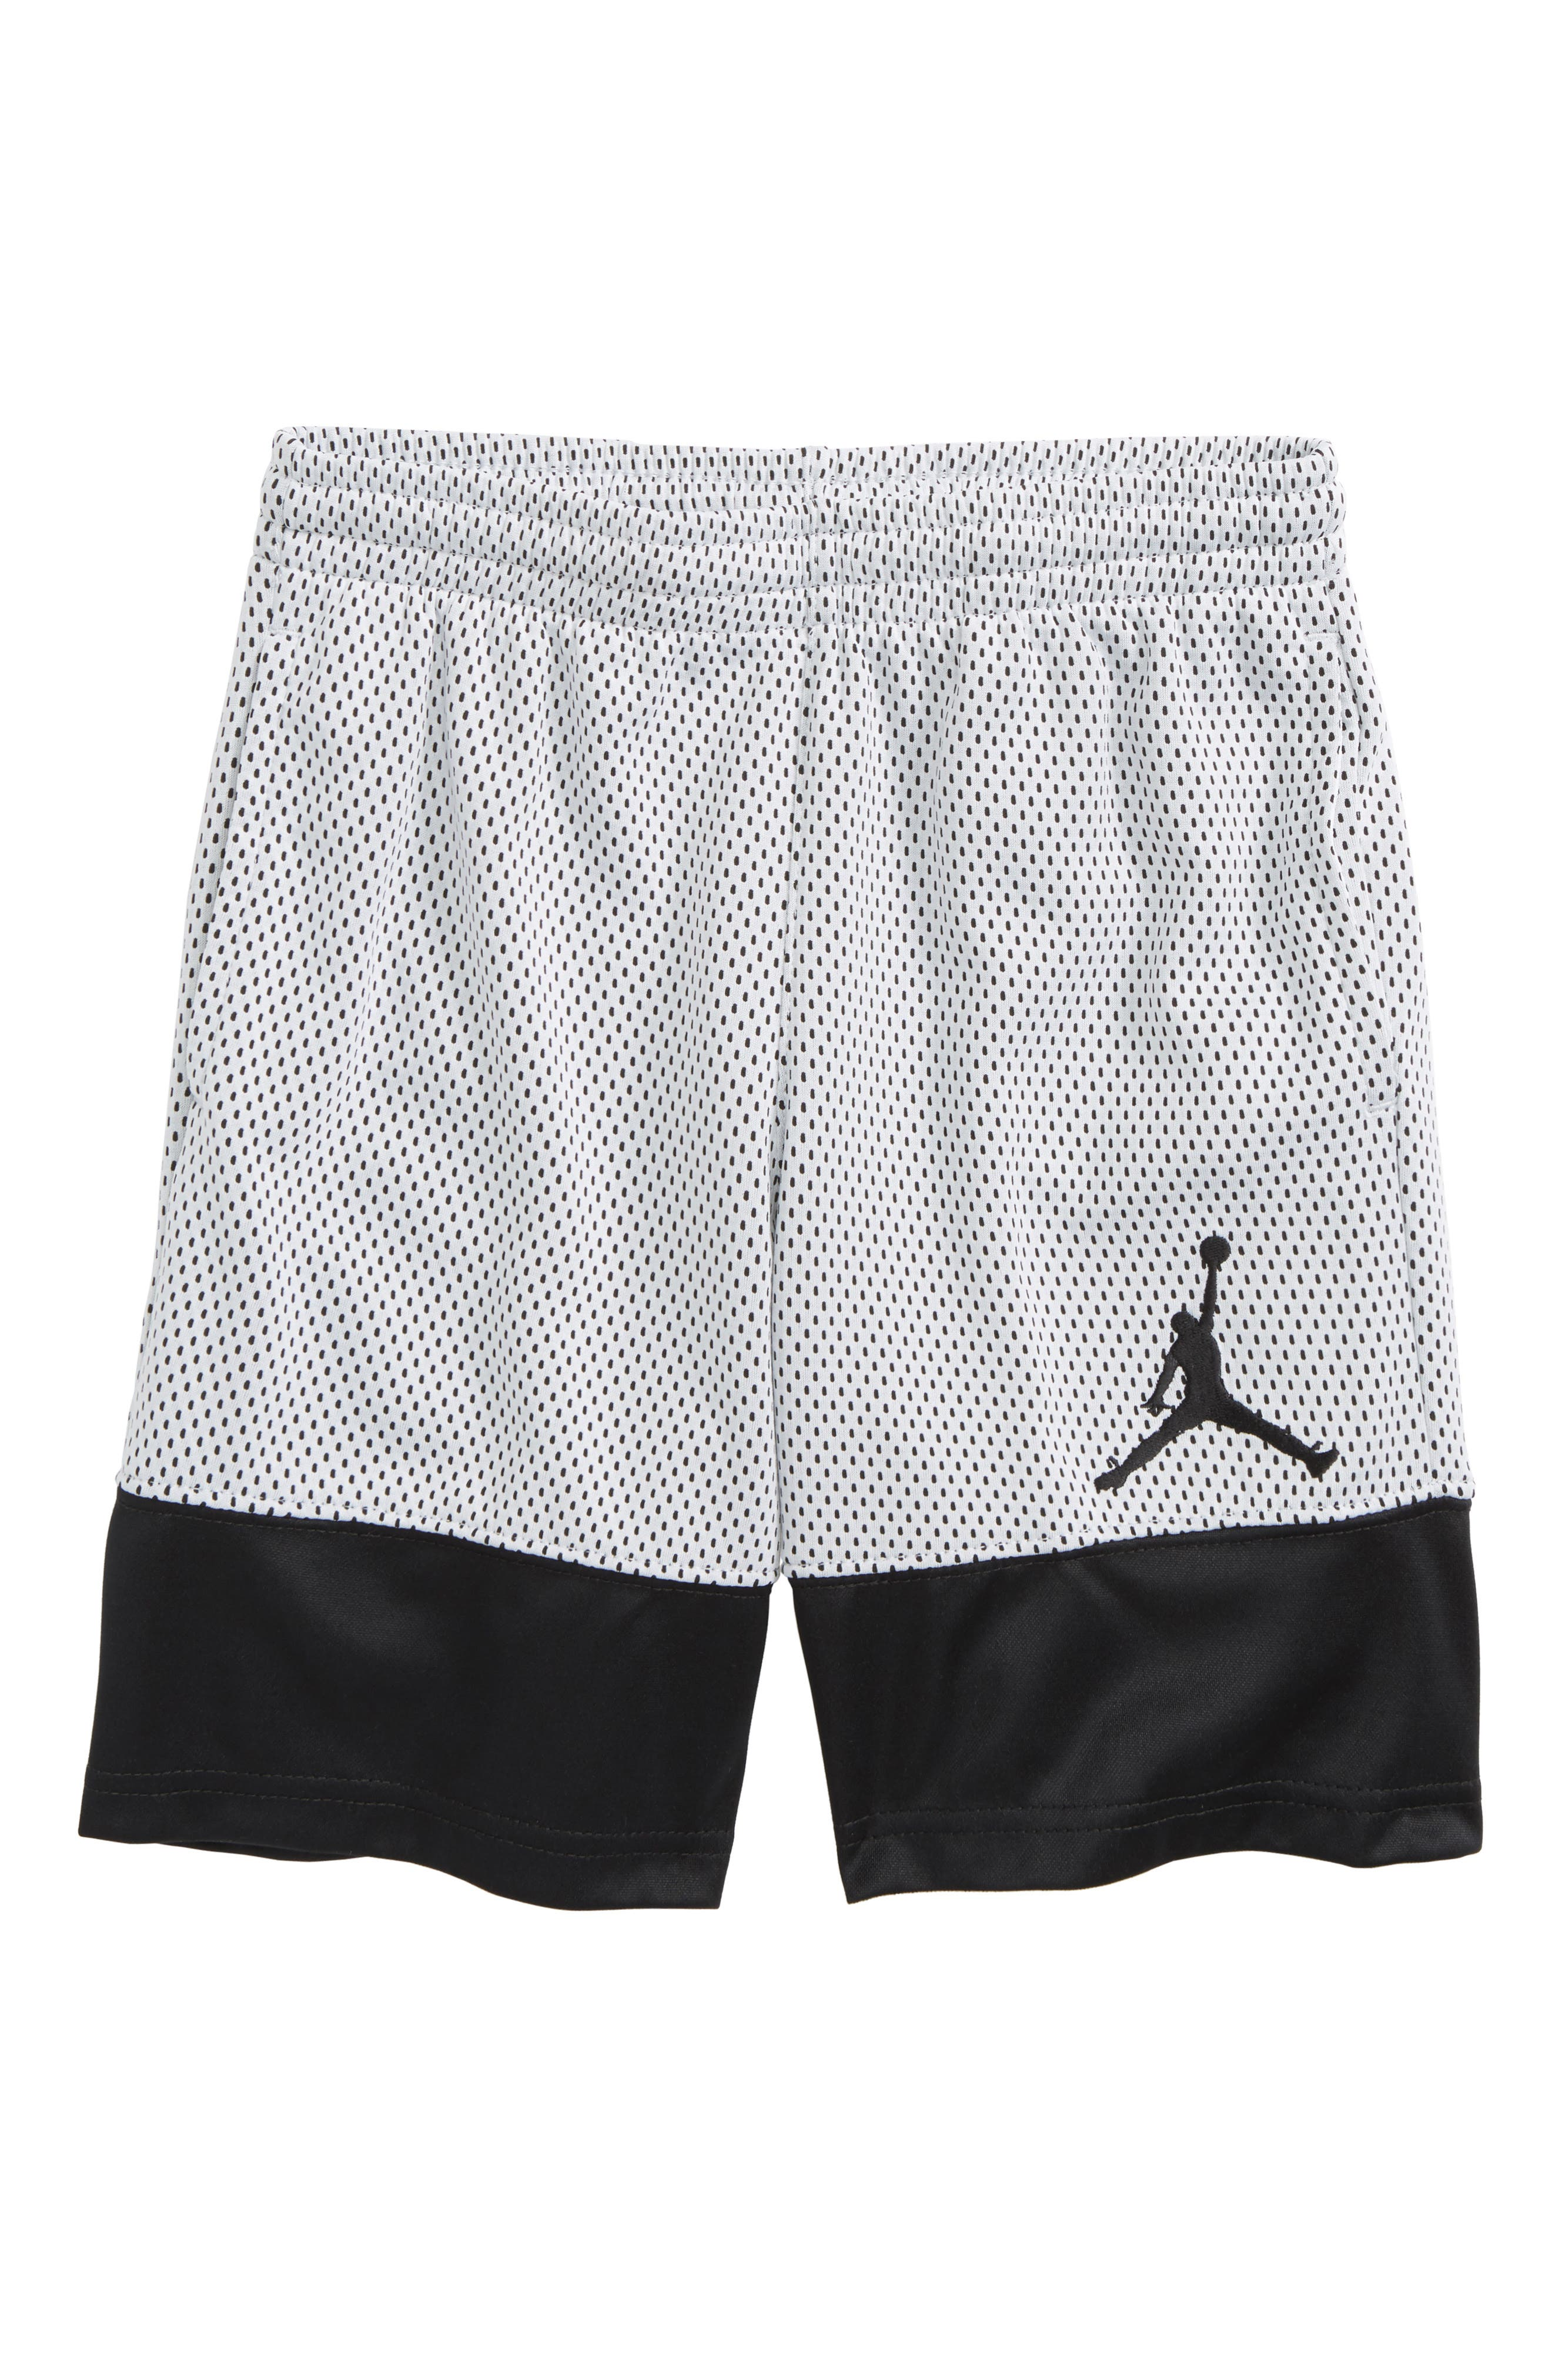 Jordan '90s Mesh Shorts,                         Main,                         color, Black/ White